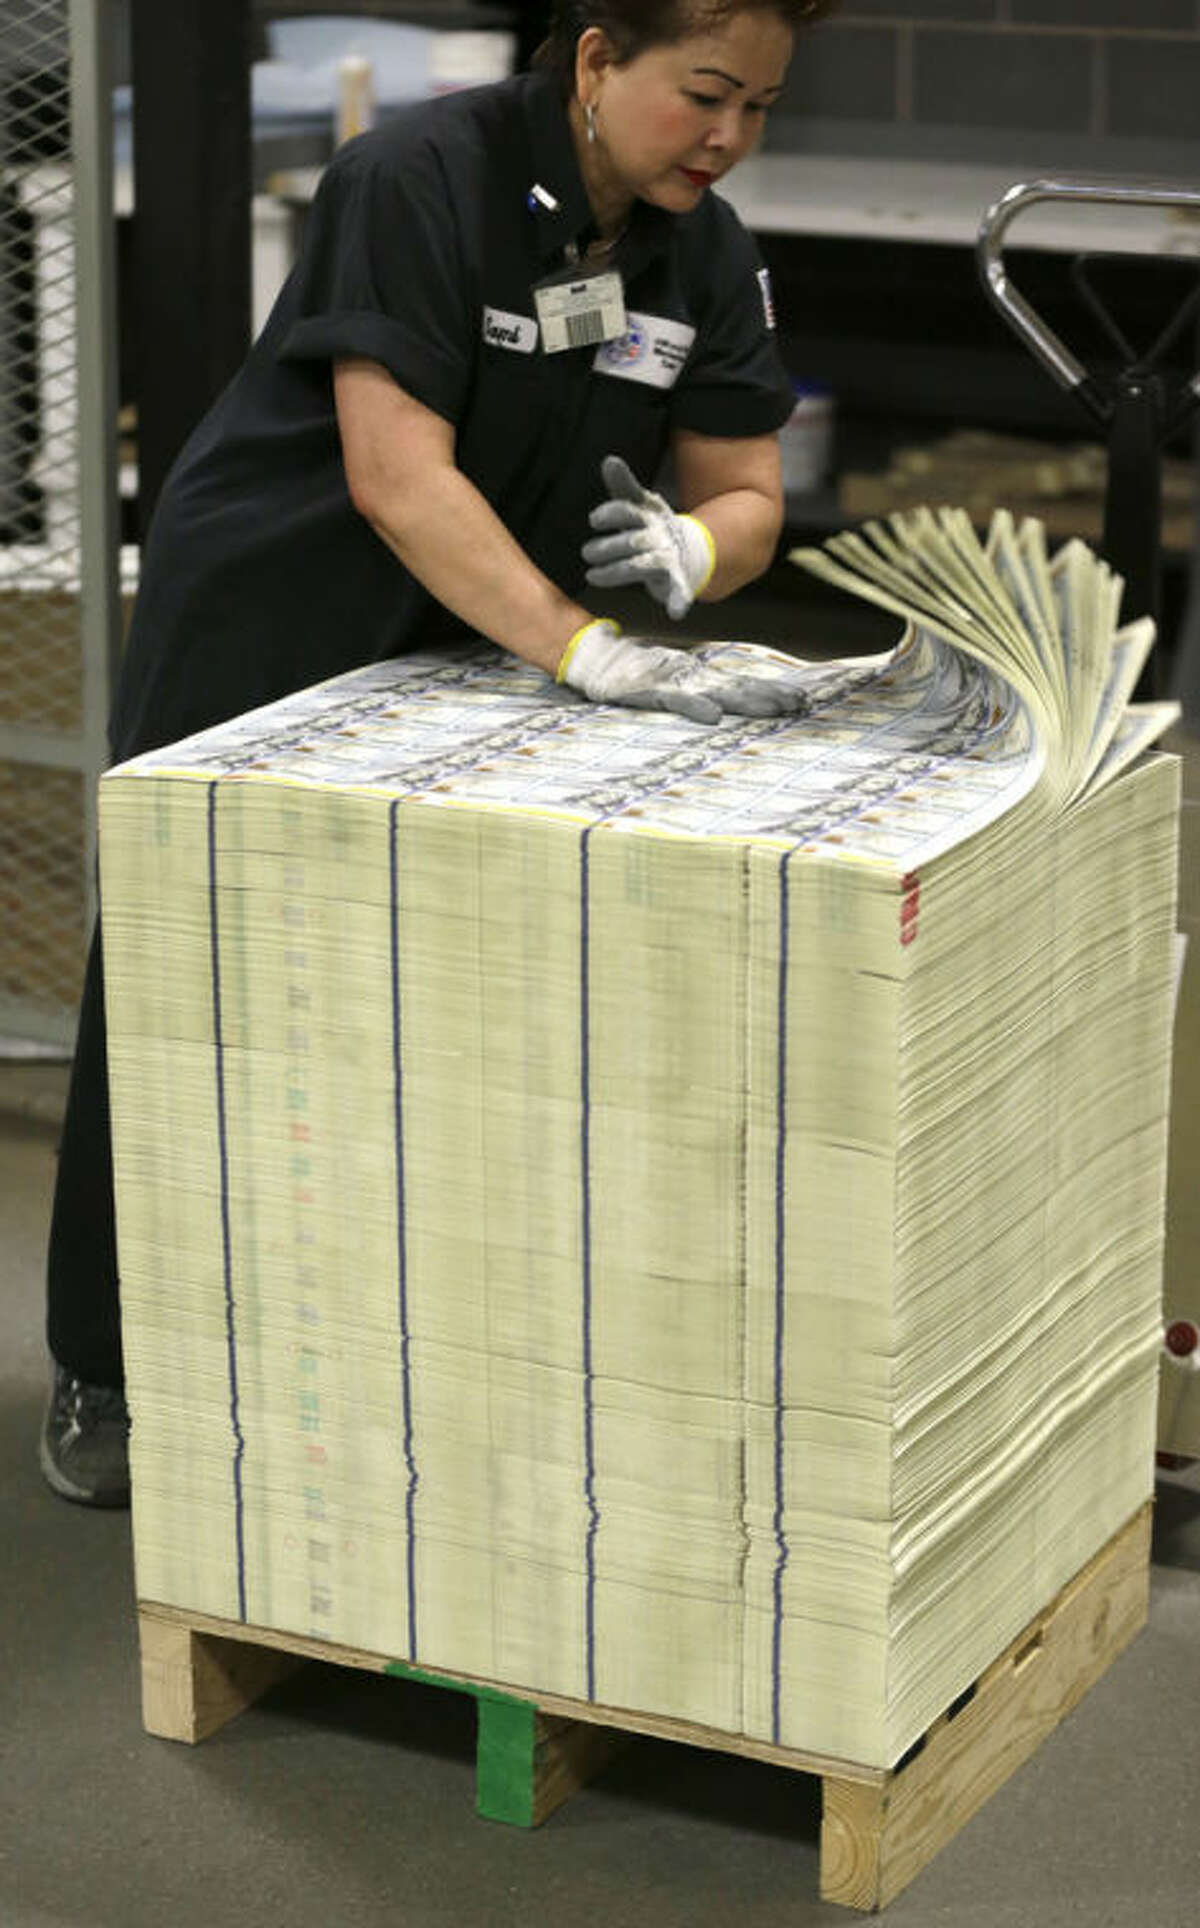 A stack of uncut sheets of $100 bills are inspected before being moved during the printing process at the Bureau of Engraving and Printing Western Currency Facility in Fort Worth, Texas, Tuesday, Sept. 24, 2013. The federal printing facility is making the new-look colorful bills that include new security features in advance of the Oct. 8 circulation date. (AP Photo/LM Otero)